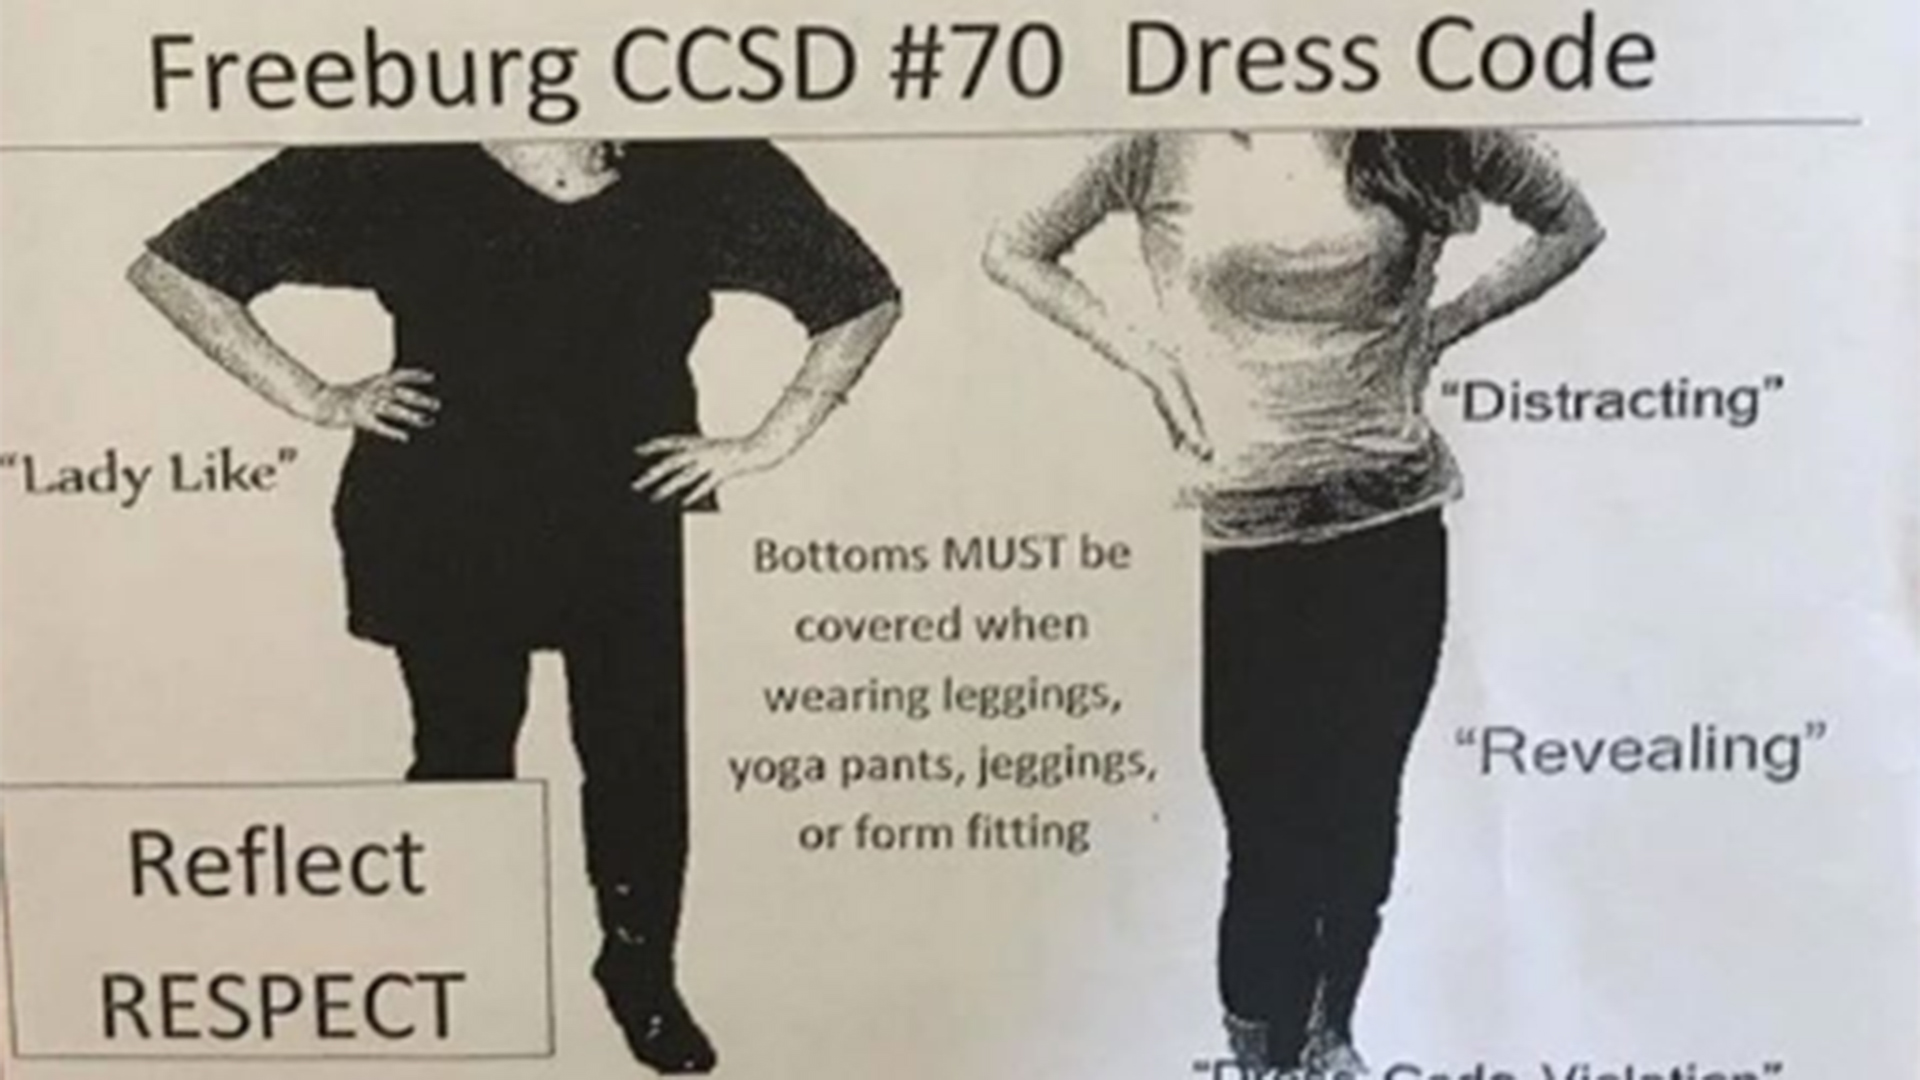 014 Satire Essay On School Dress Code Dresscode Today Tease 27227fd8ea9de65ba33f62eb08a826f4 Beautiful Full